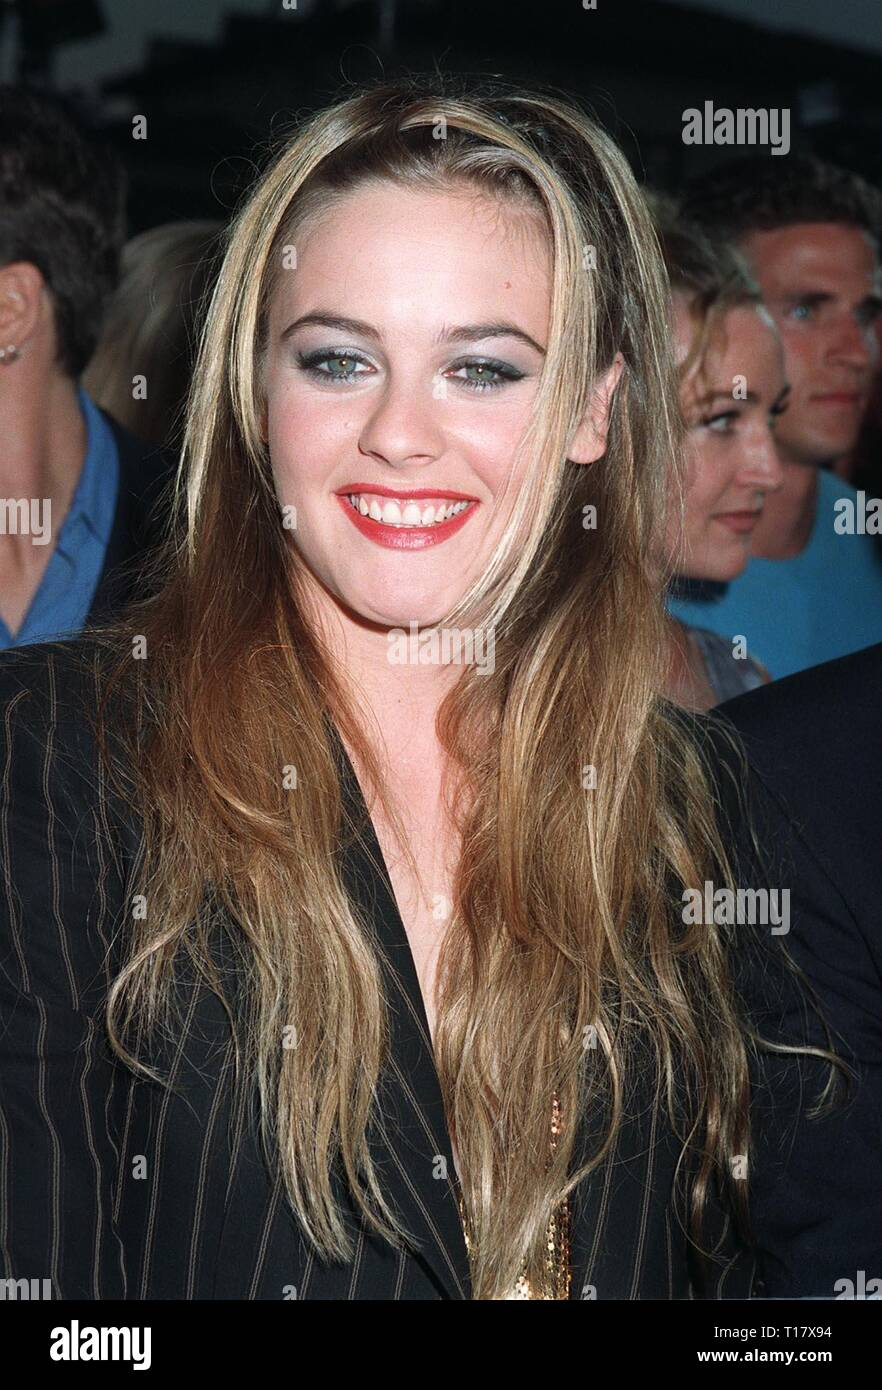 LOS ANGELES, CA. August 25, 1997: Actress Alicia Silverstone at premiere of her new movie, 'Excess Baggage,' which she also co-produced. - Stock Image